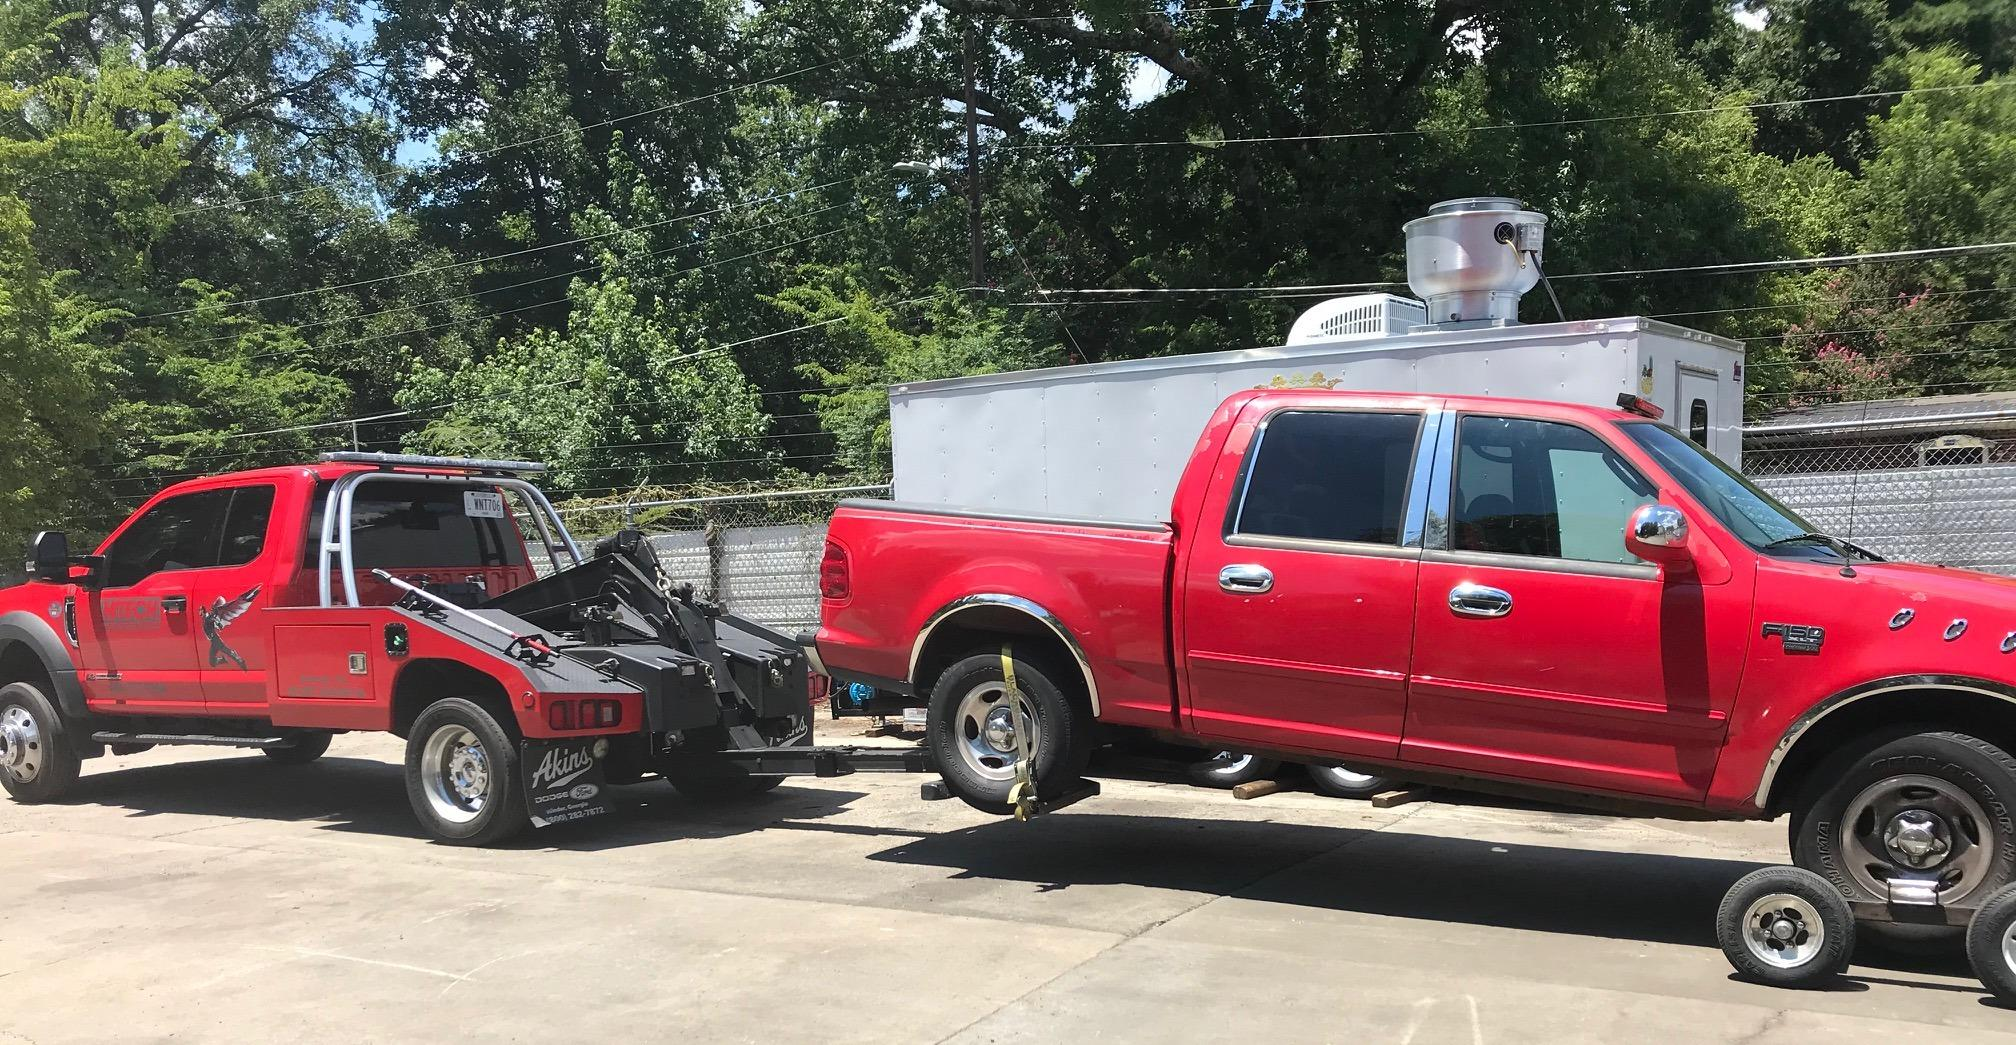 Hitech Towing & Recovery Services